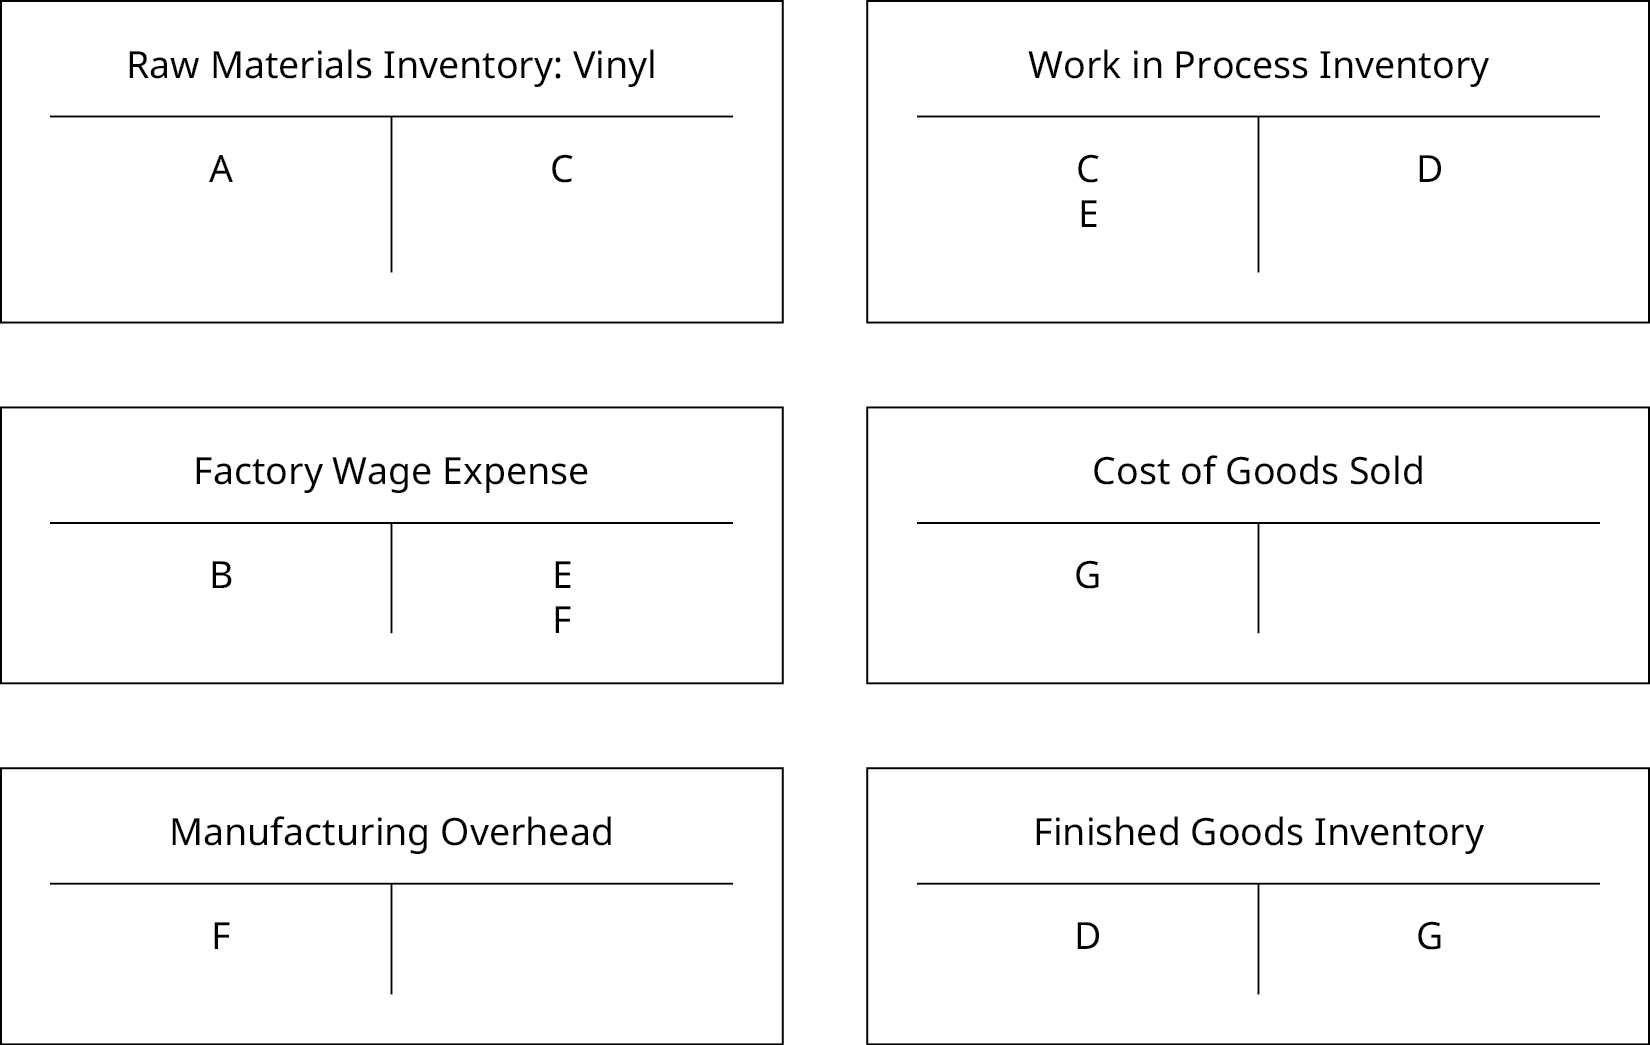 """The six T-Accounts: one each for """"Raw Materials Inventory: Vinyl"""", """"Factory Wage Expense"""", """"Manufacturing Overhead"""", """"Work in Process Inventory"""", """"Cost of Goods Sold"""", and """"Finished Goods Inventory"""" are now filled out."""